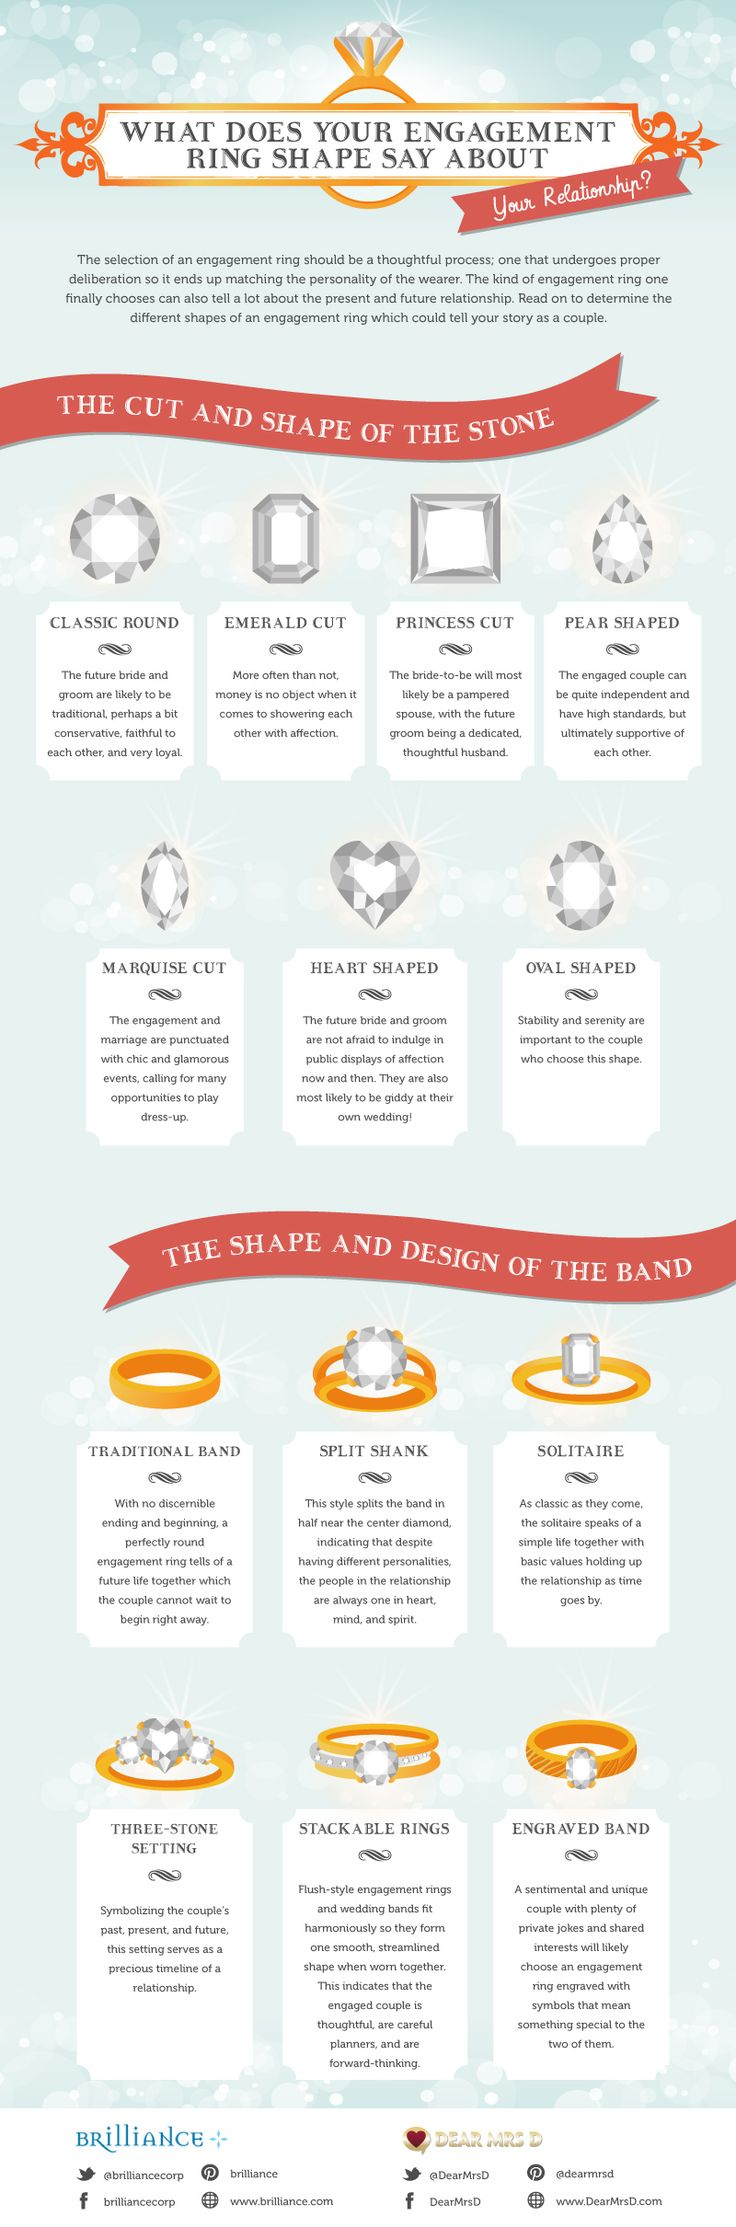 What Does Your Engagement Ring Say About Your Relationship? Discover more about the sparkle you've been given with this infographic! http://blog.brilliance.com/2013/ring-shapes